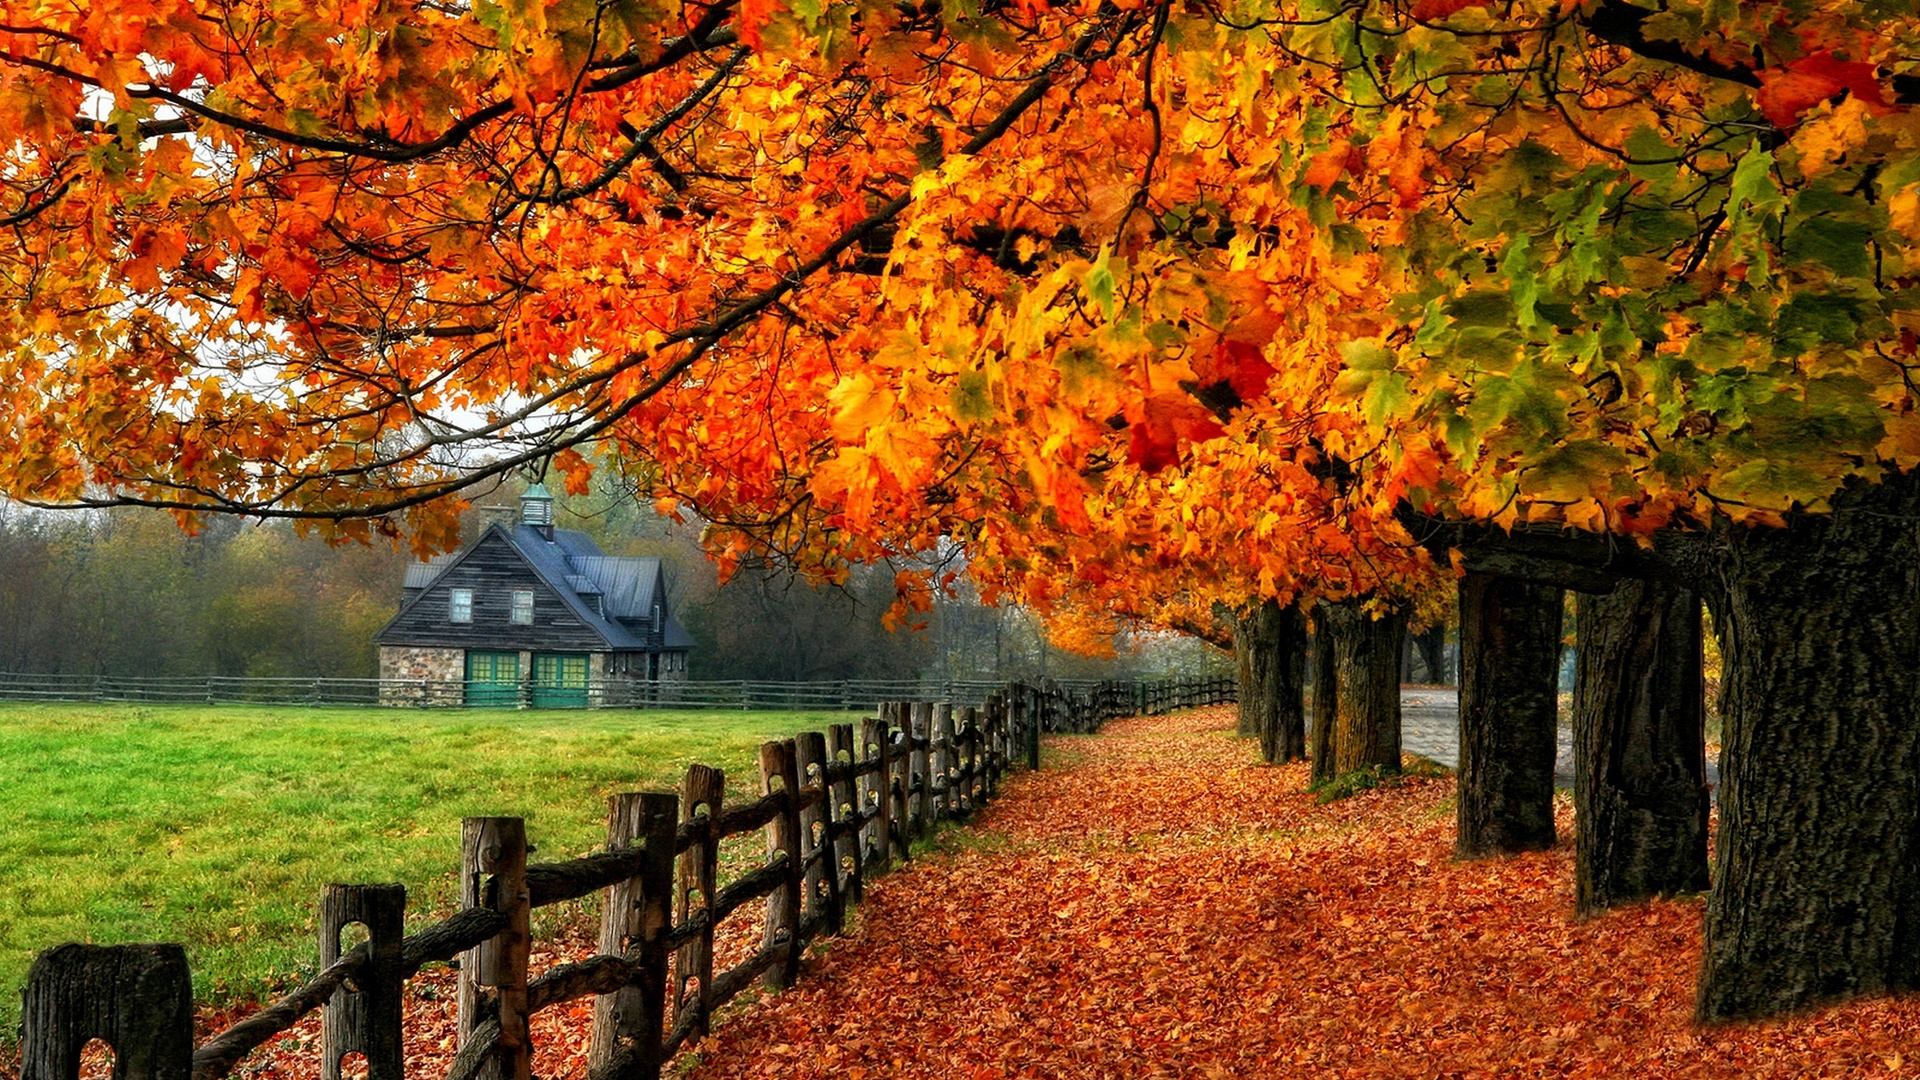 Colorful autumn red leaves path grass house Wallpaper 1920x1080 1920x1080